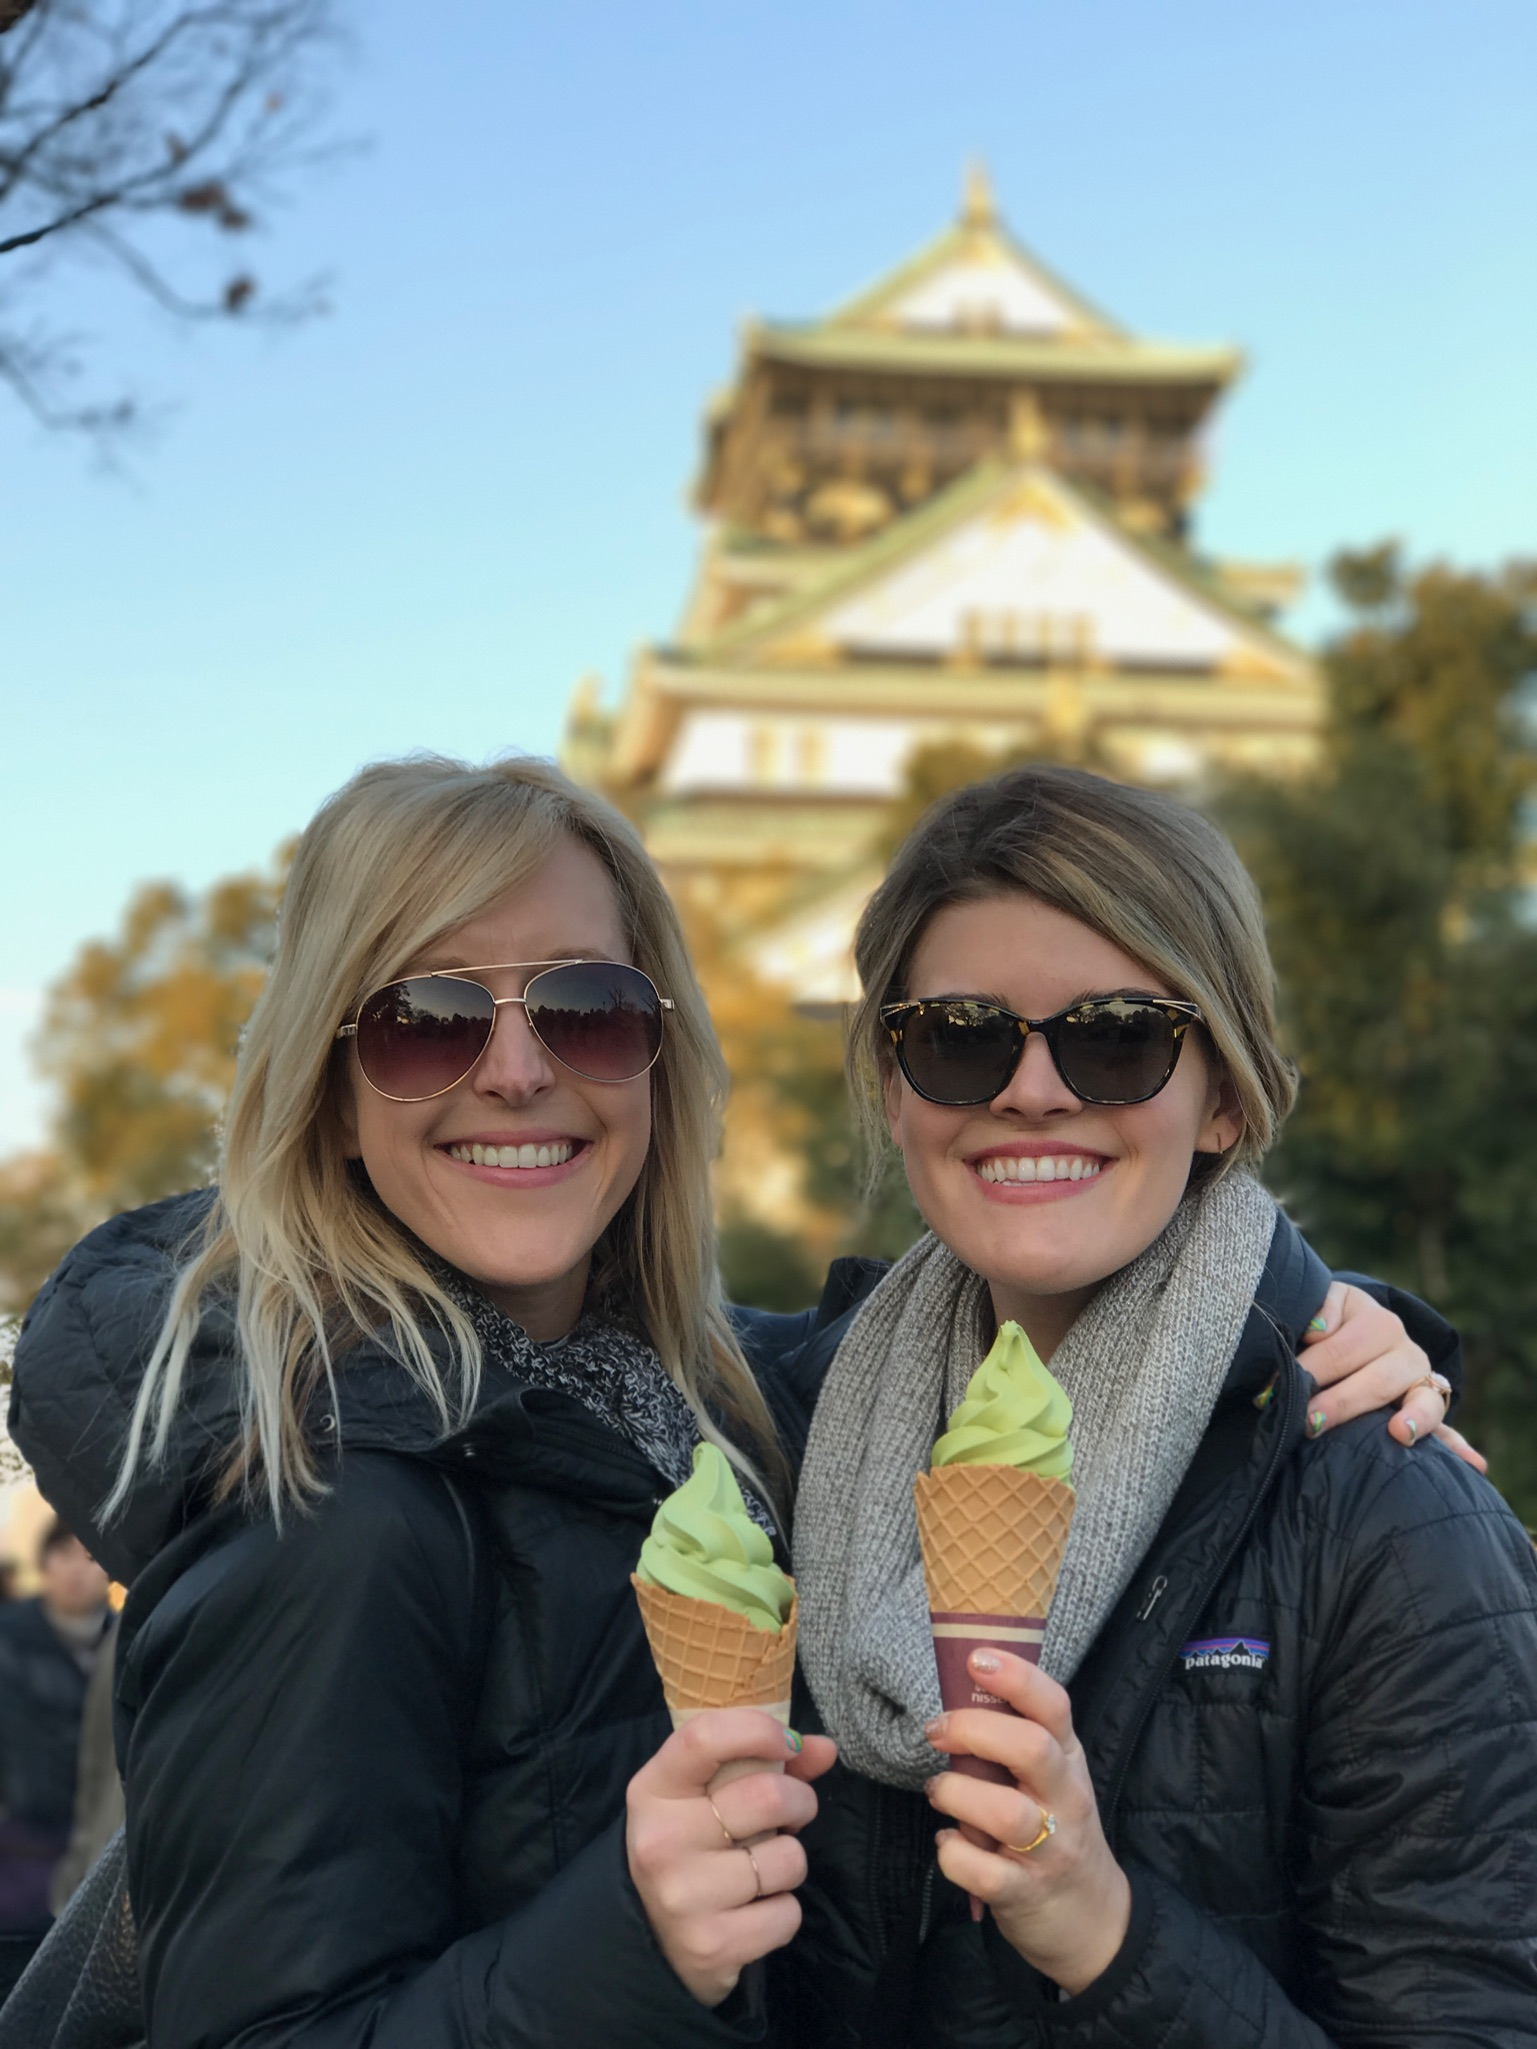 Green Tea ice cream and Osaka Castle